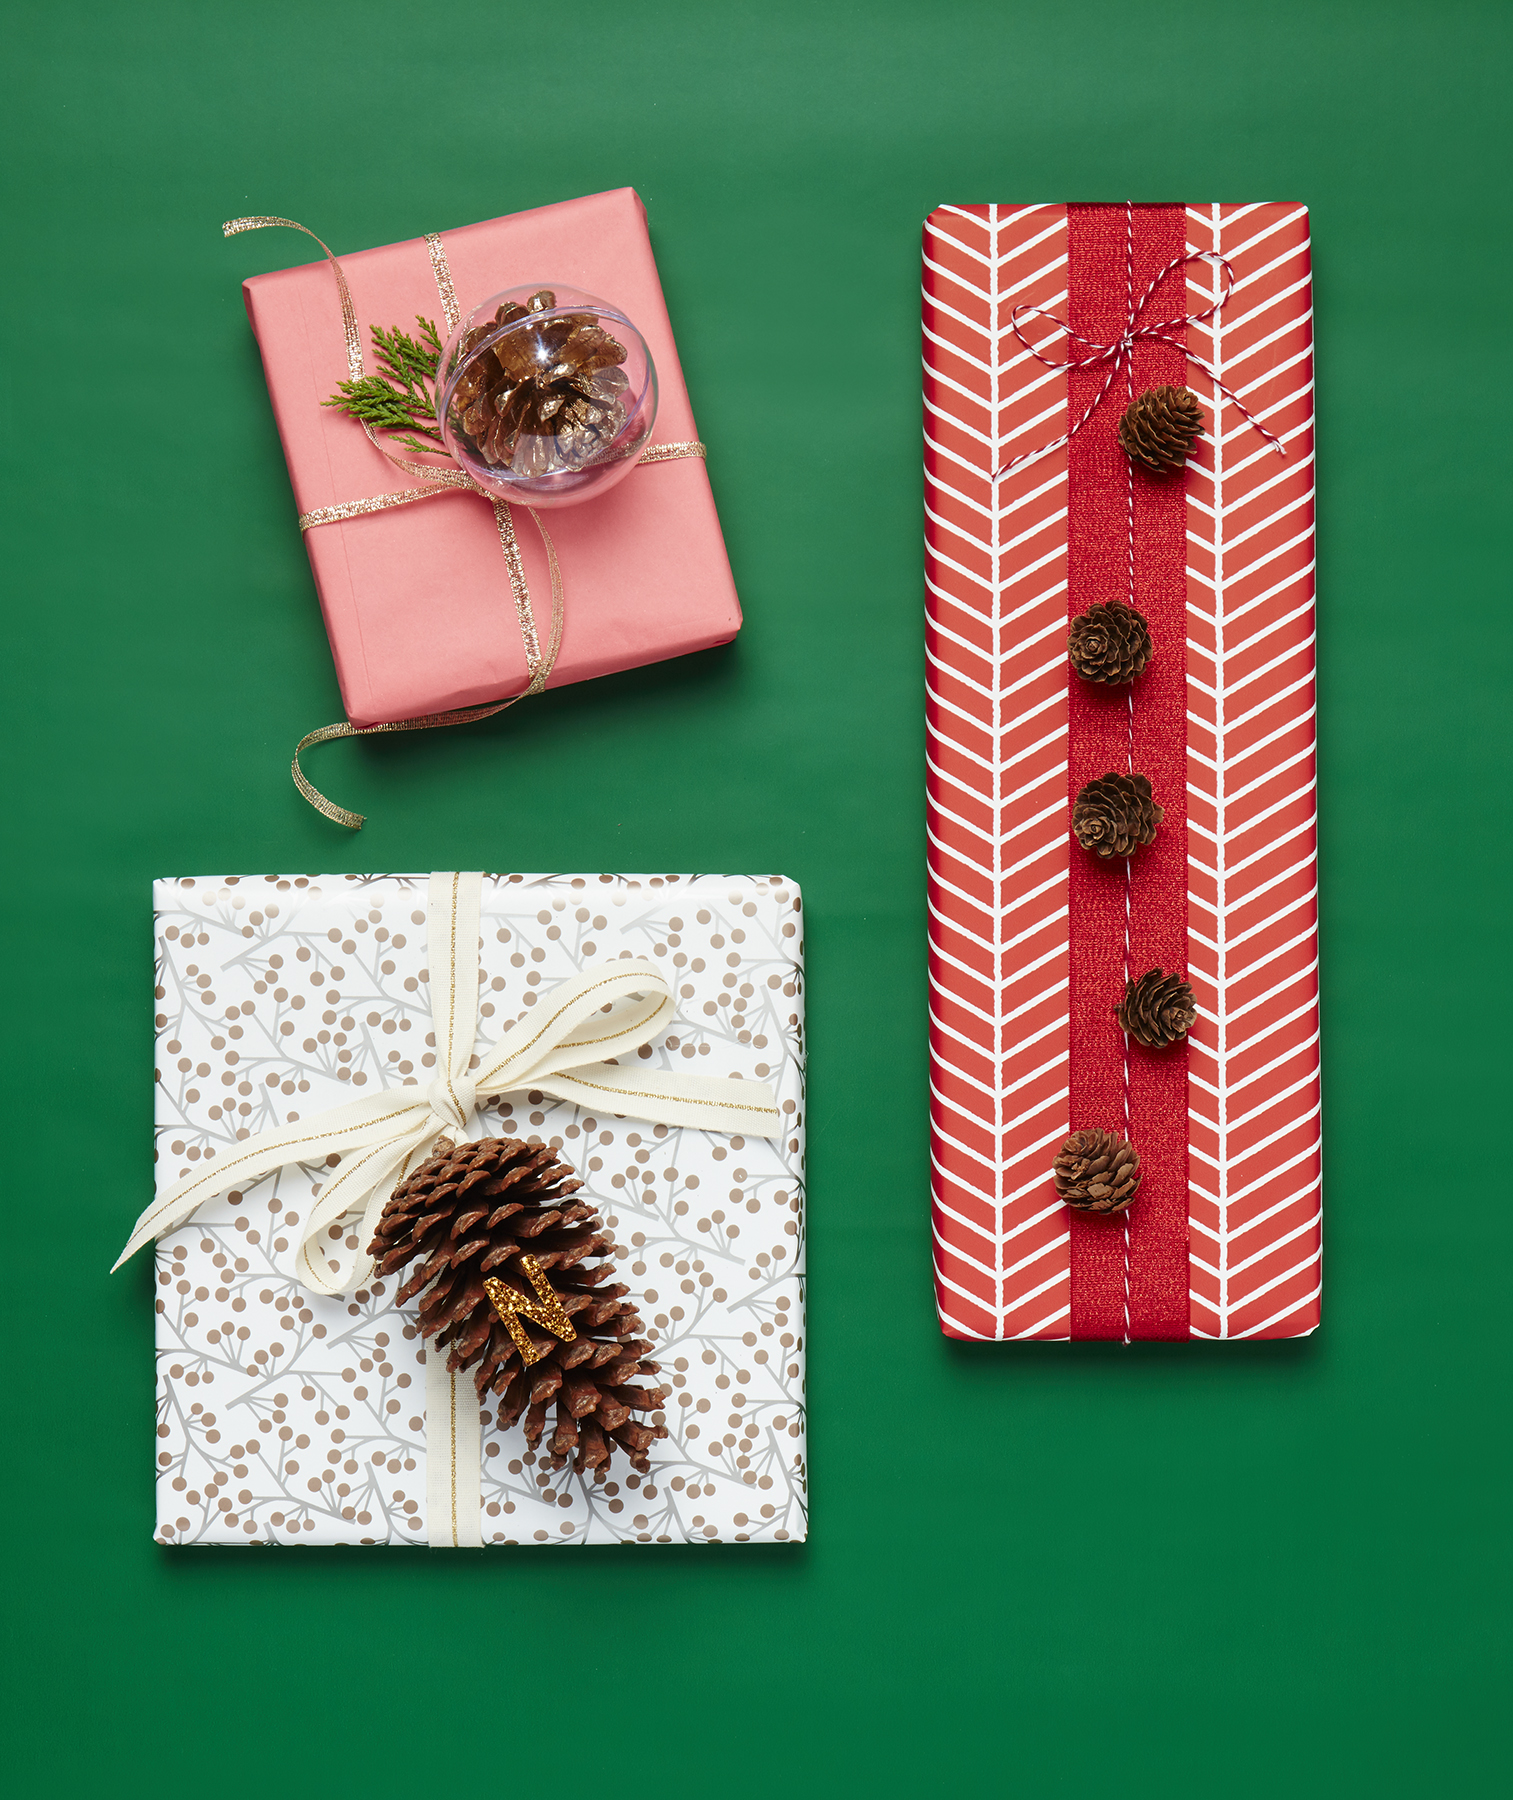 Christmas crafts ideas - Pinecone Present Topper